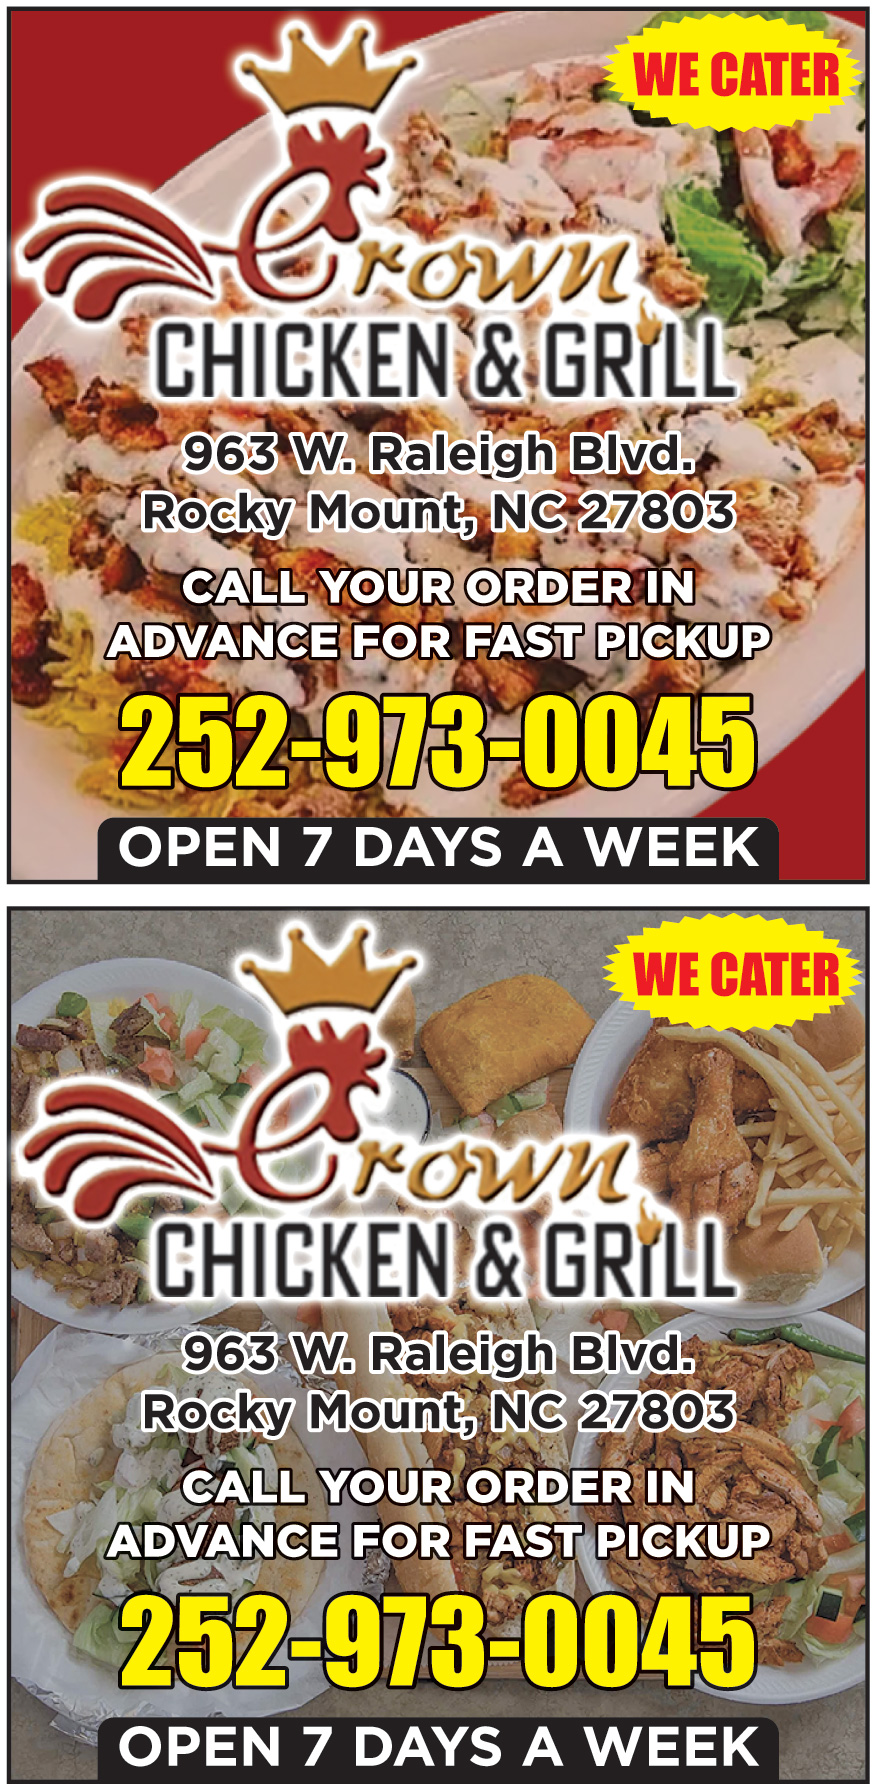 CROWN CHICKEN AND GRILL